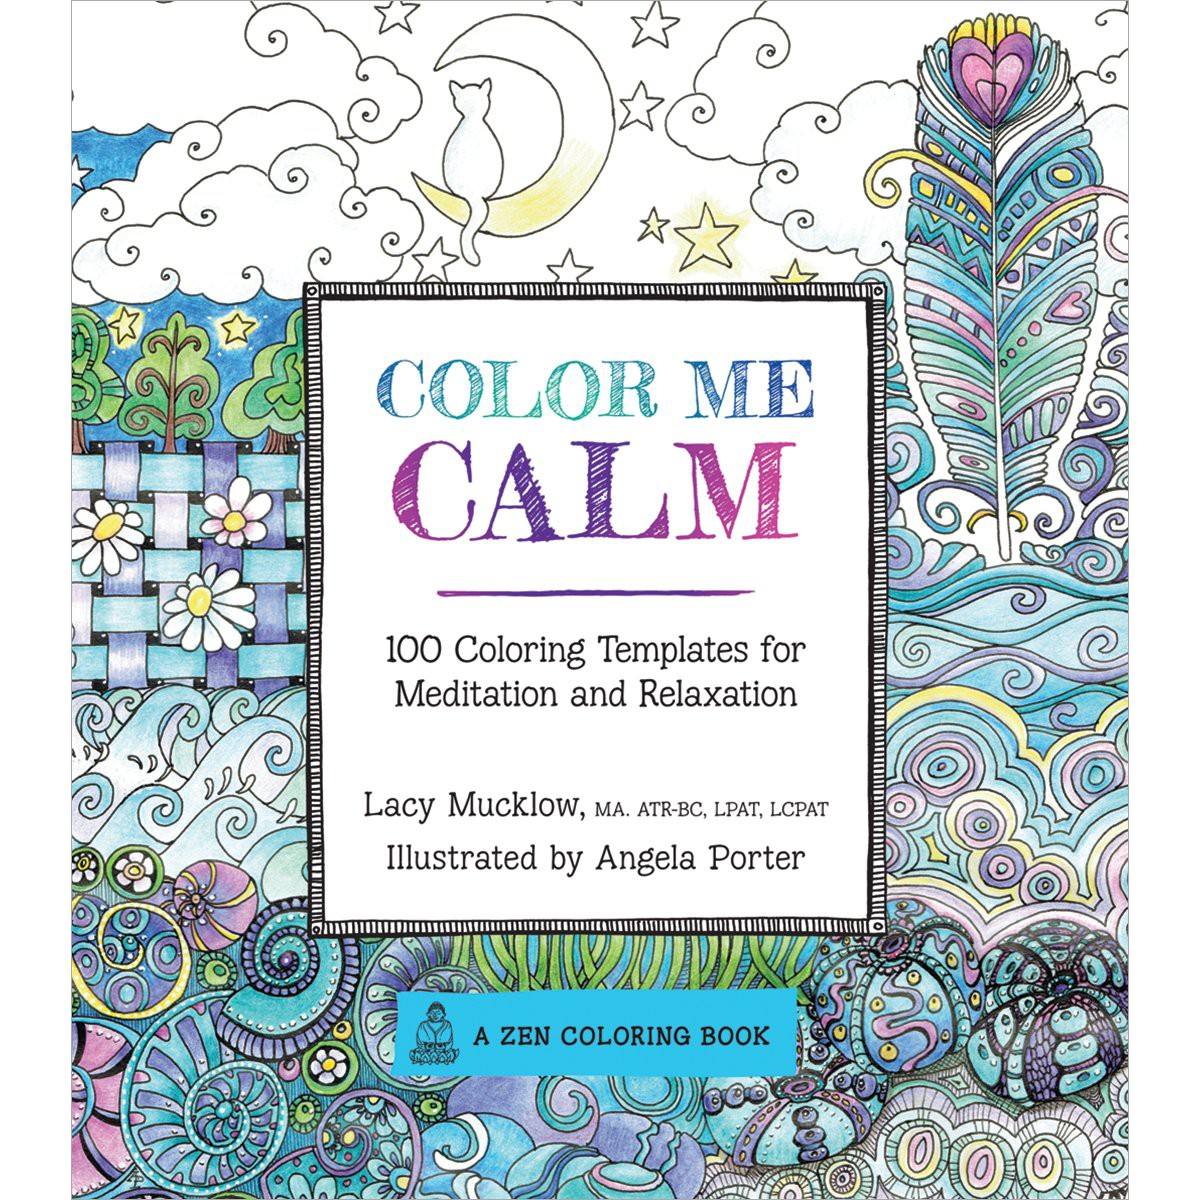 Colorful coloring book for adults download - Anti Stress Colouring Book Target Color Me Calm Adult Coloring Book Download Stress Coloring Book